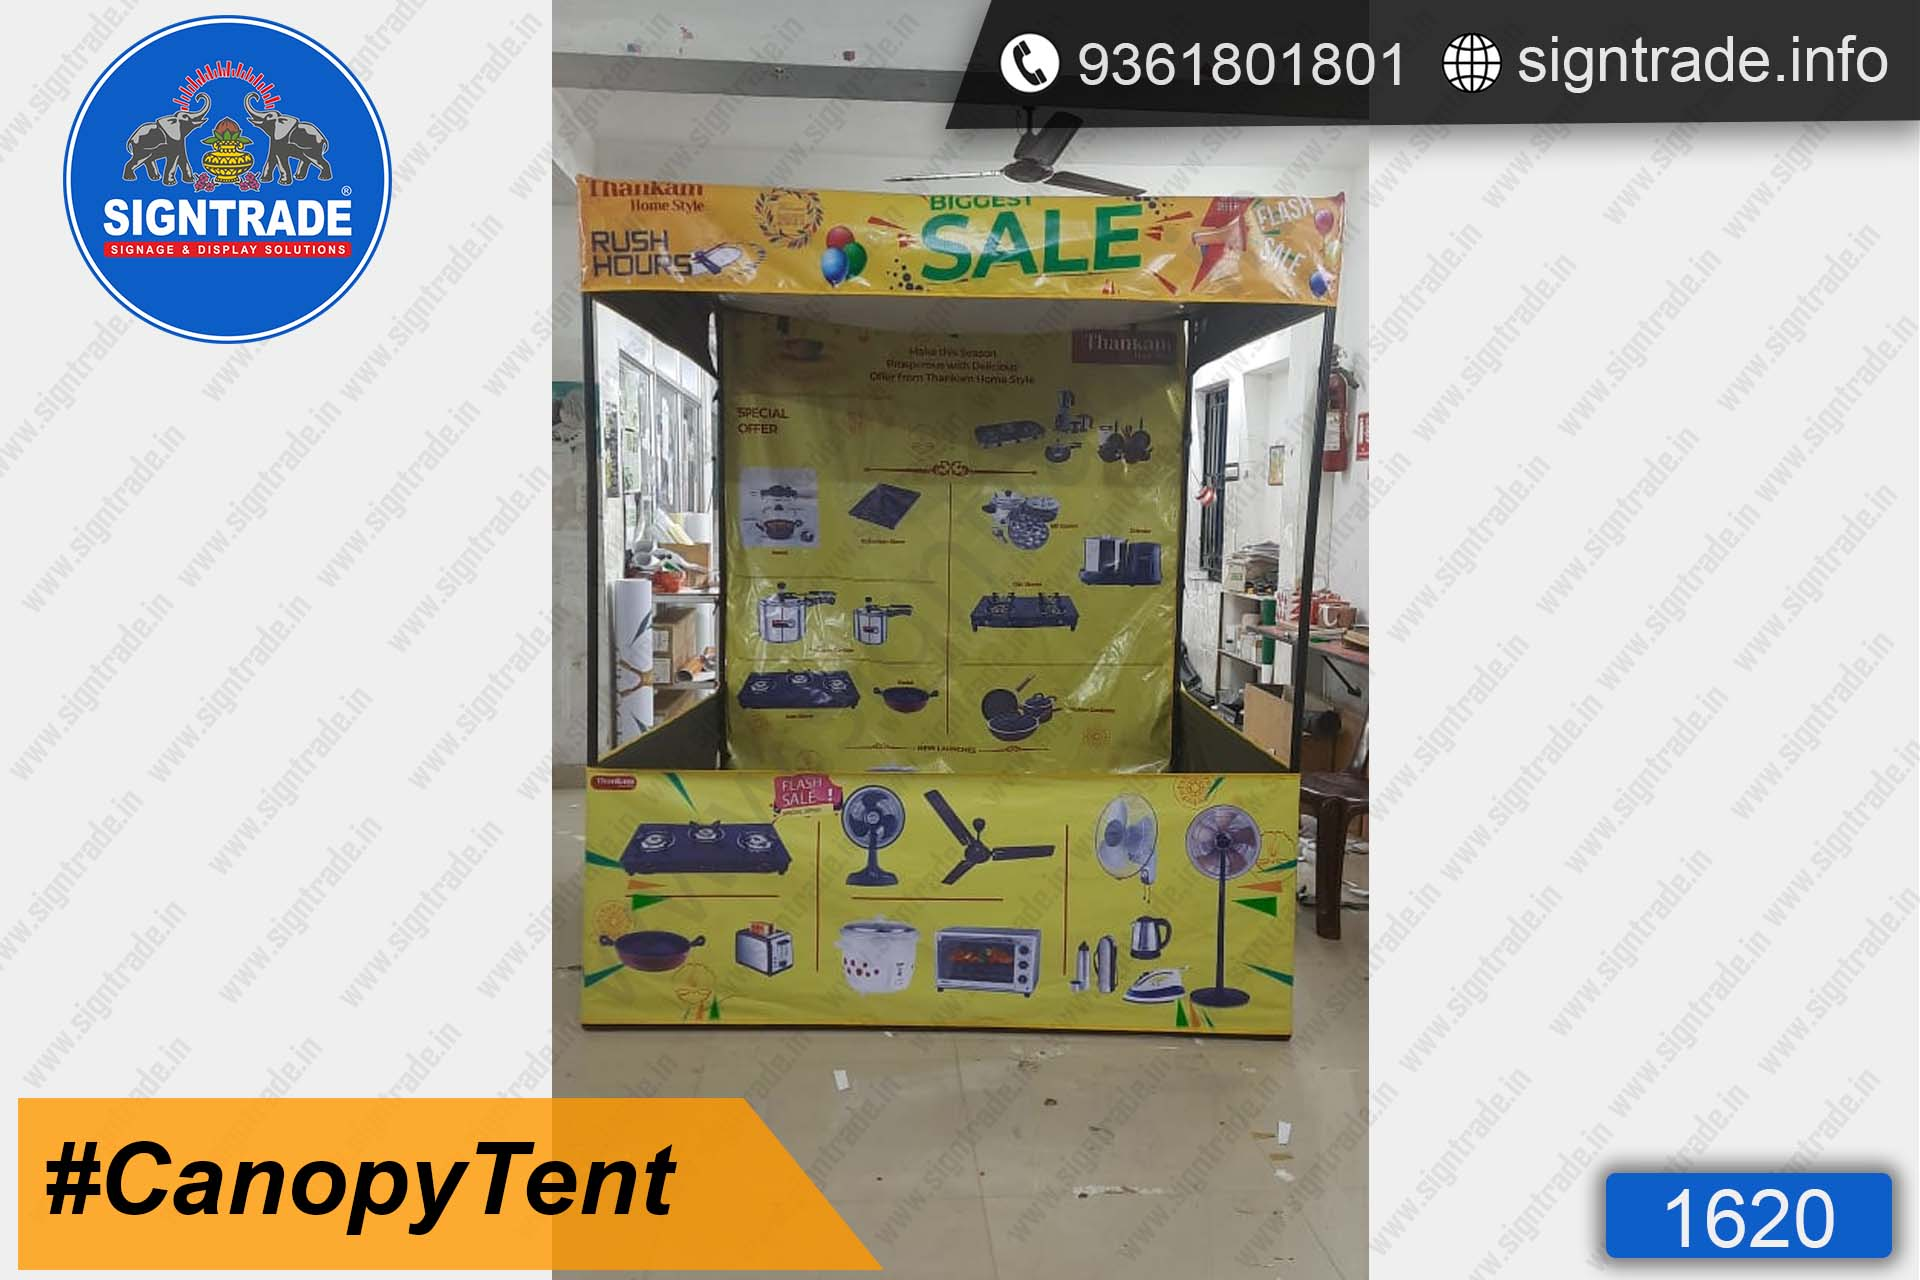 Thankam Home Style - Canopy Tent - SIGNTRADE - Promotional Canopy Tent Manufacturers in Chennai